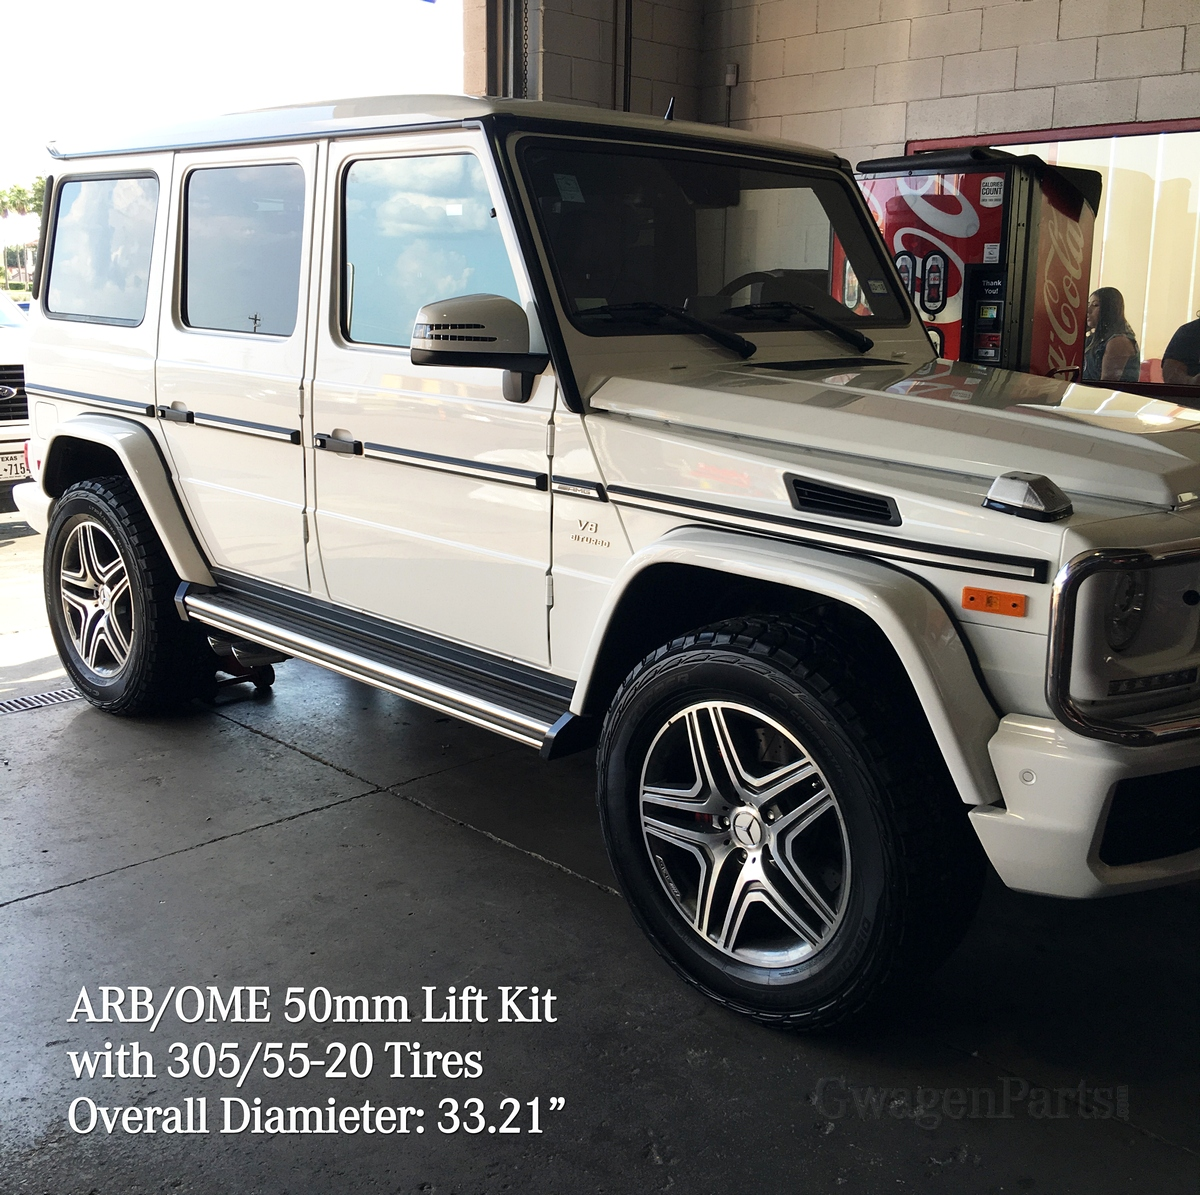 Mercedes G-class (W463) ARB/OME 50mm Lift Kit (with front bar)